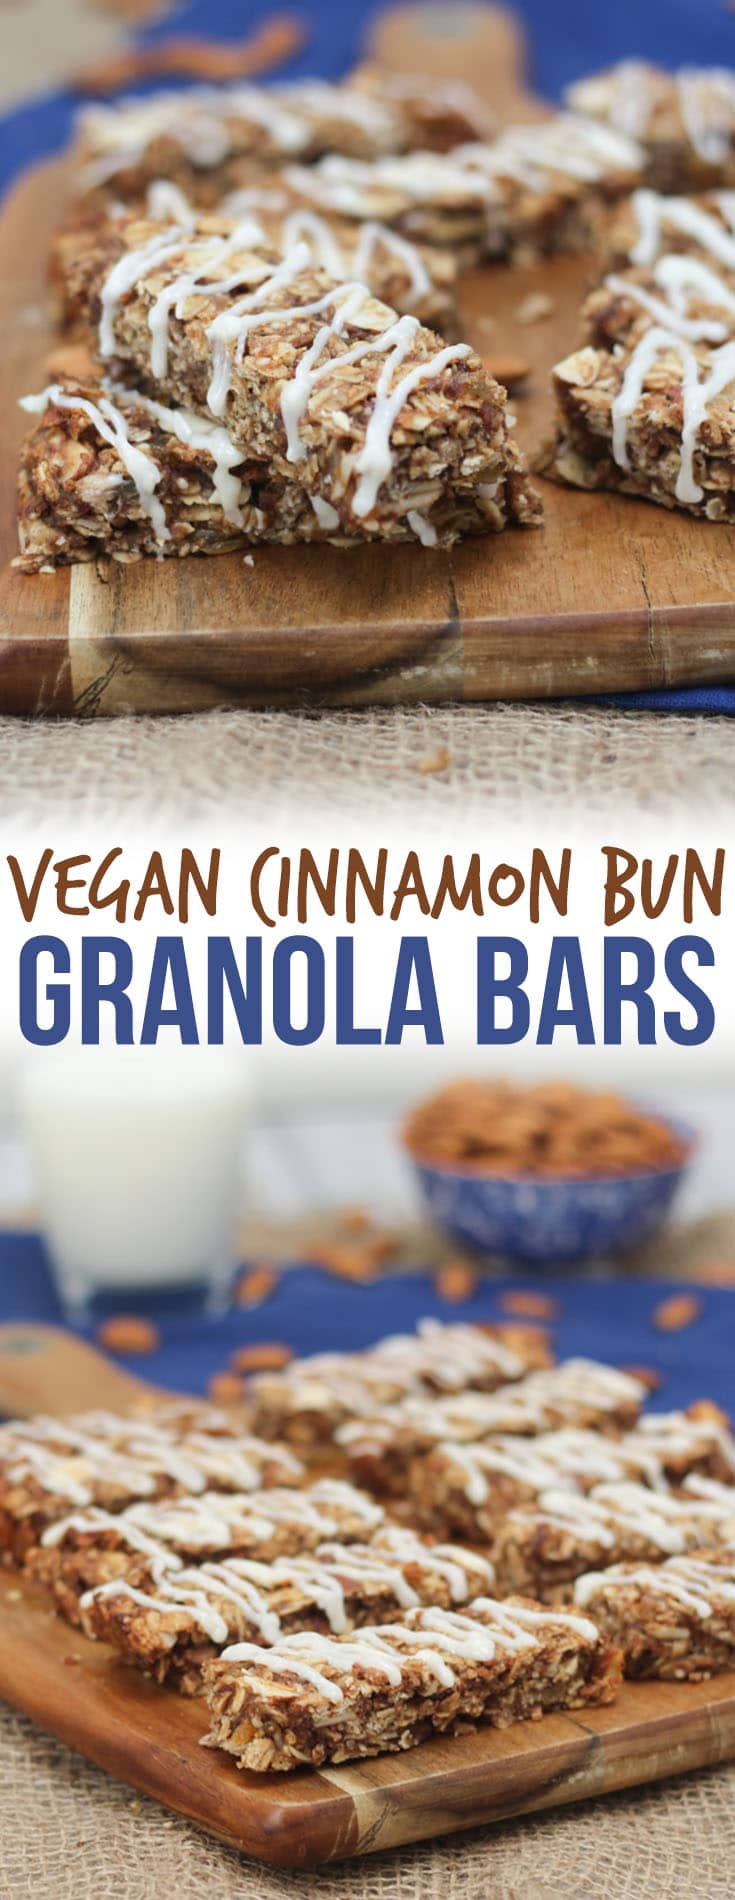 "A pinterest image of multiple cinnamon bun granola bars on a brown cutting board with the text overlay ""Vegan Cinnamon Bun Granola Bars.\"""